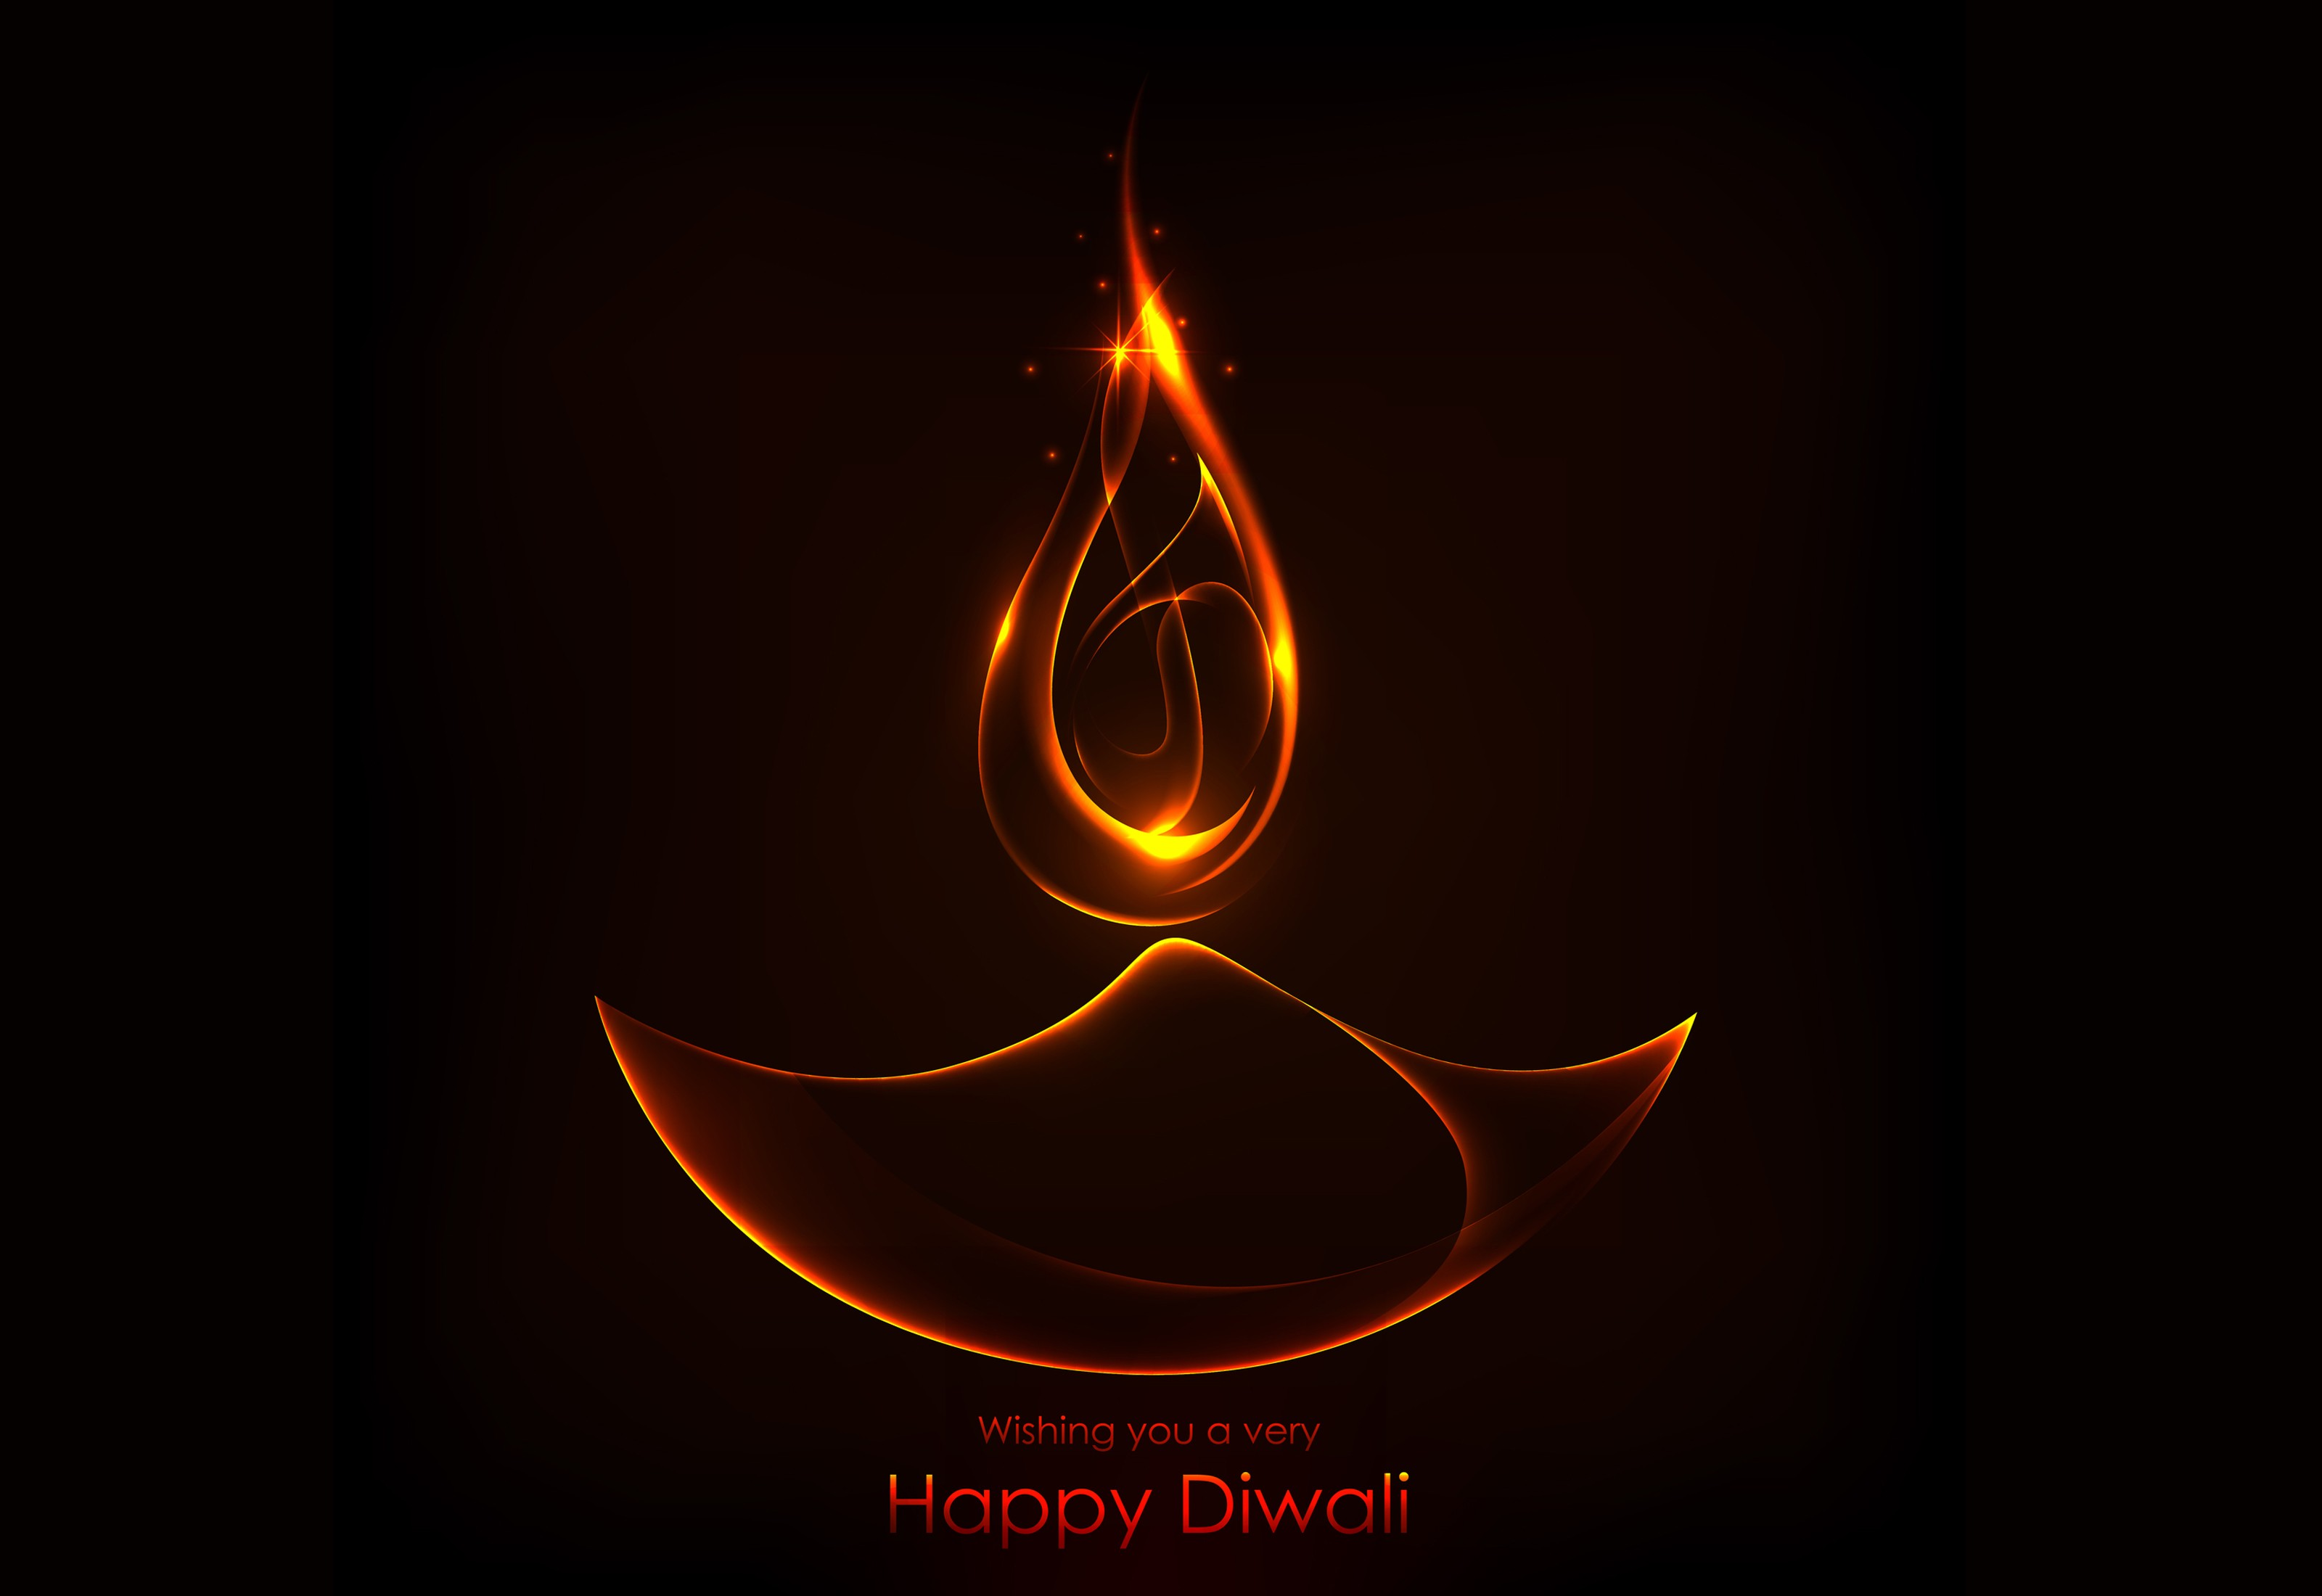 diwali special images wallpapers 2017 collection picture whatsapp image download